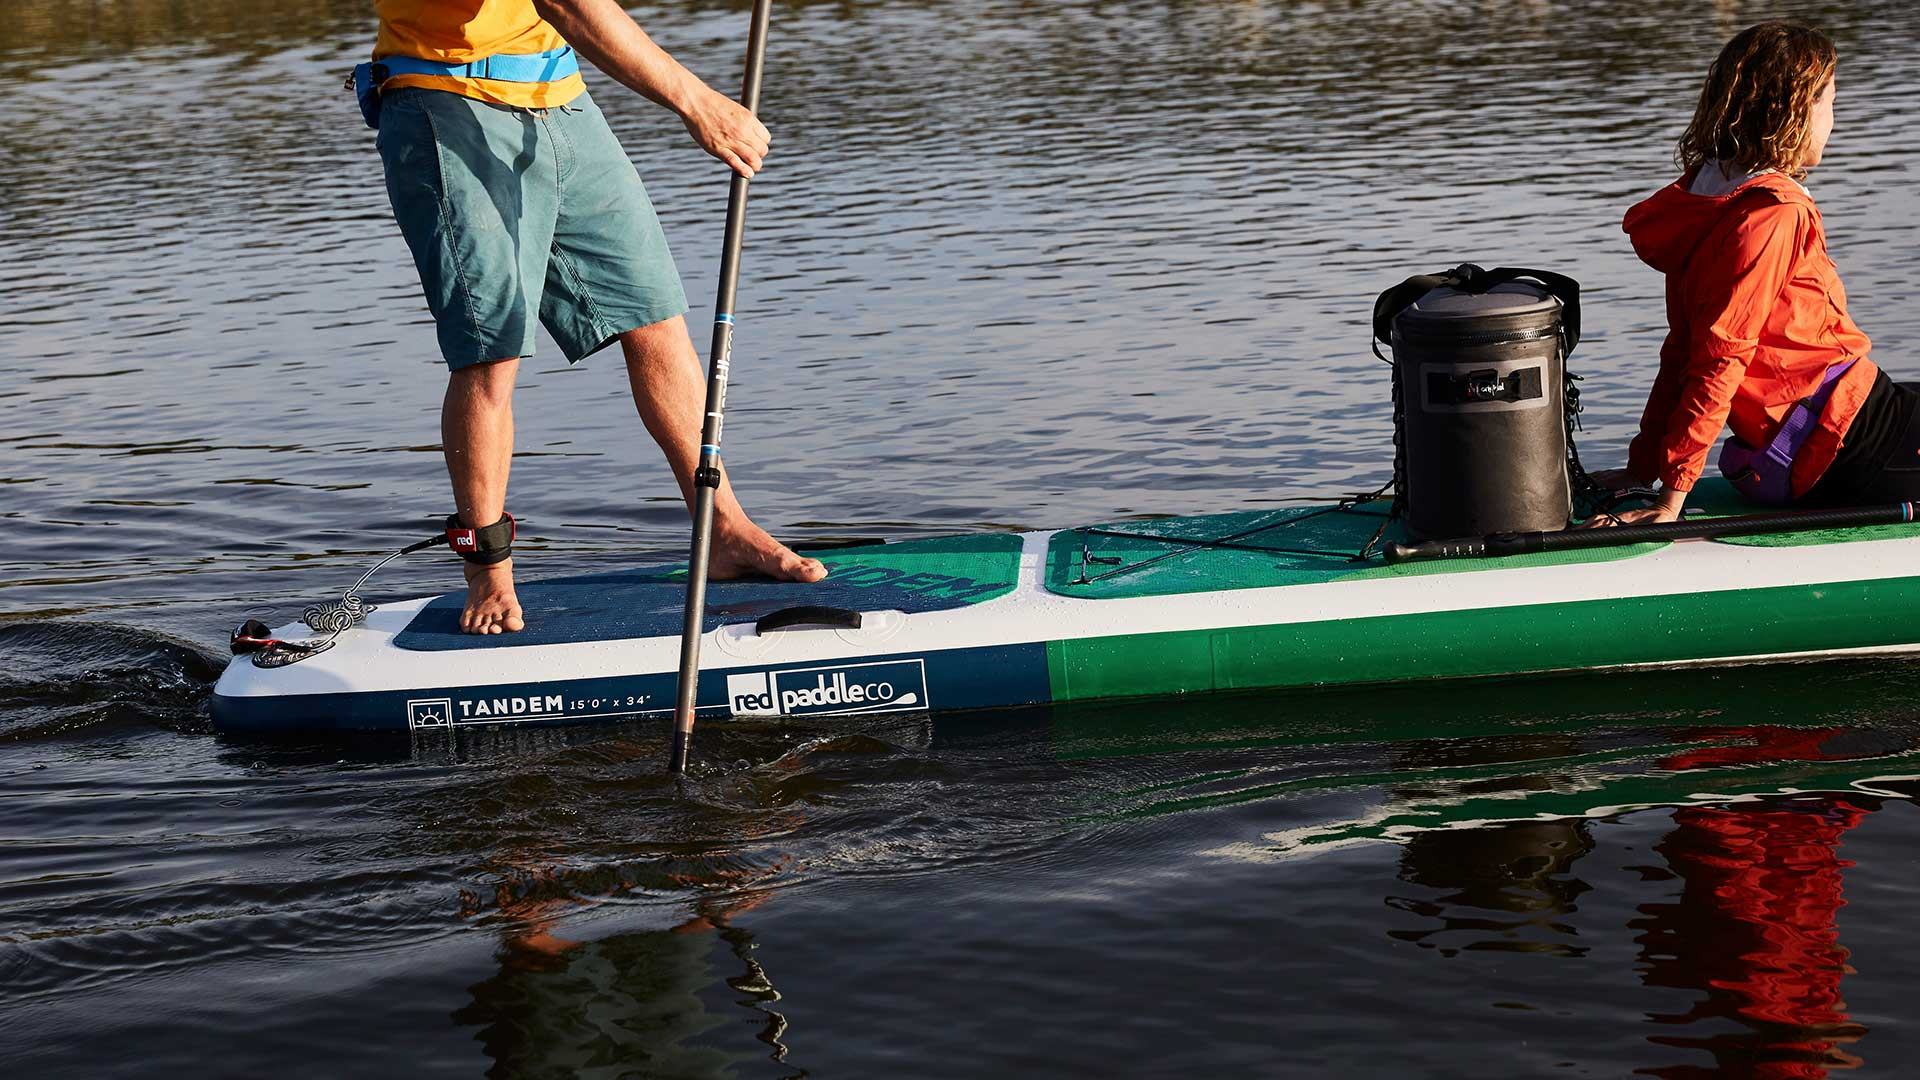 redpaddleco-150-voyager-tandem-inflatable-paddle-board-desktop-gallery-cargo